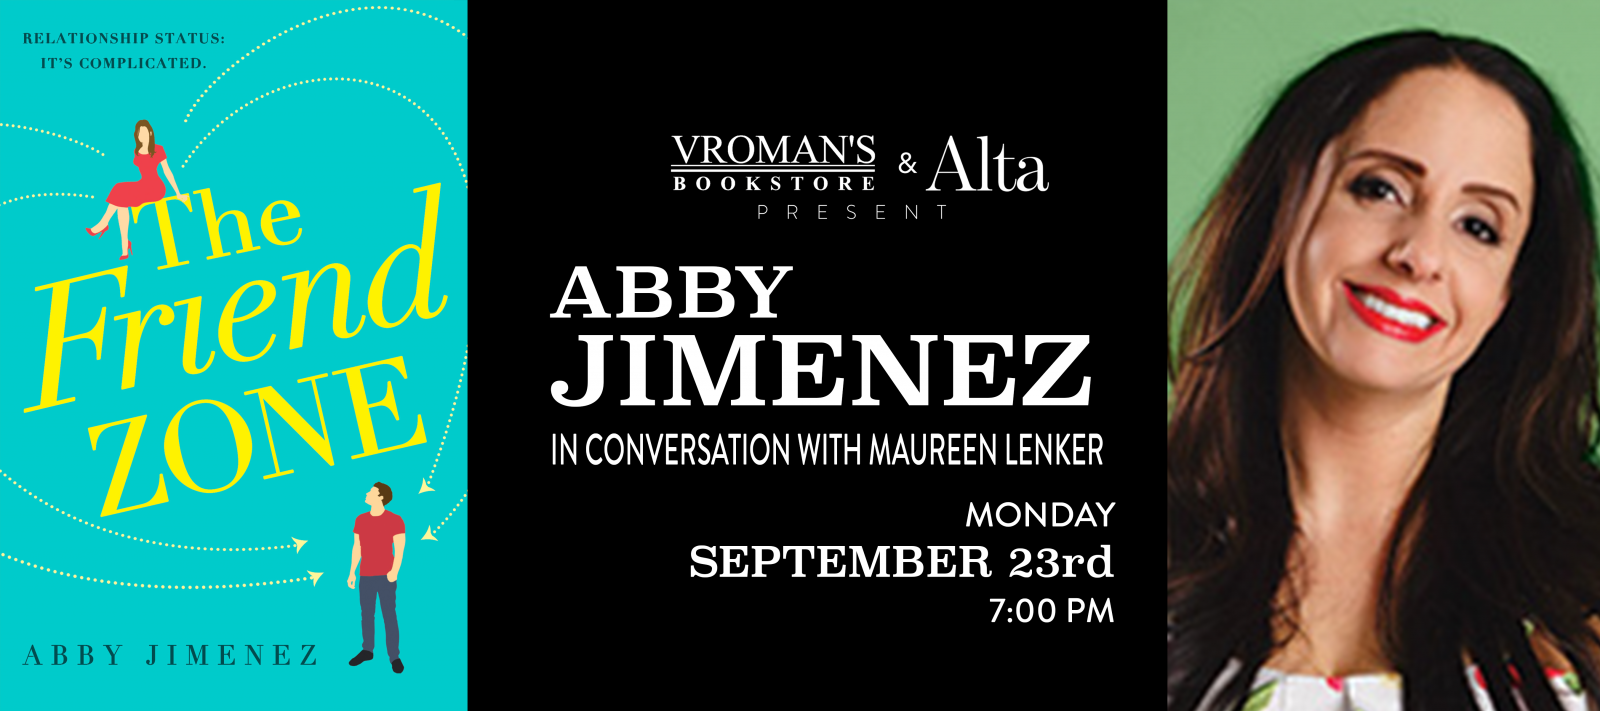 Abby Jimenez book signing Monday September 23rd at 7pm